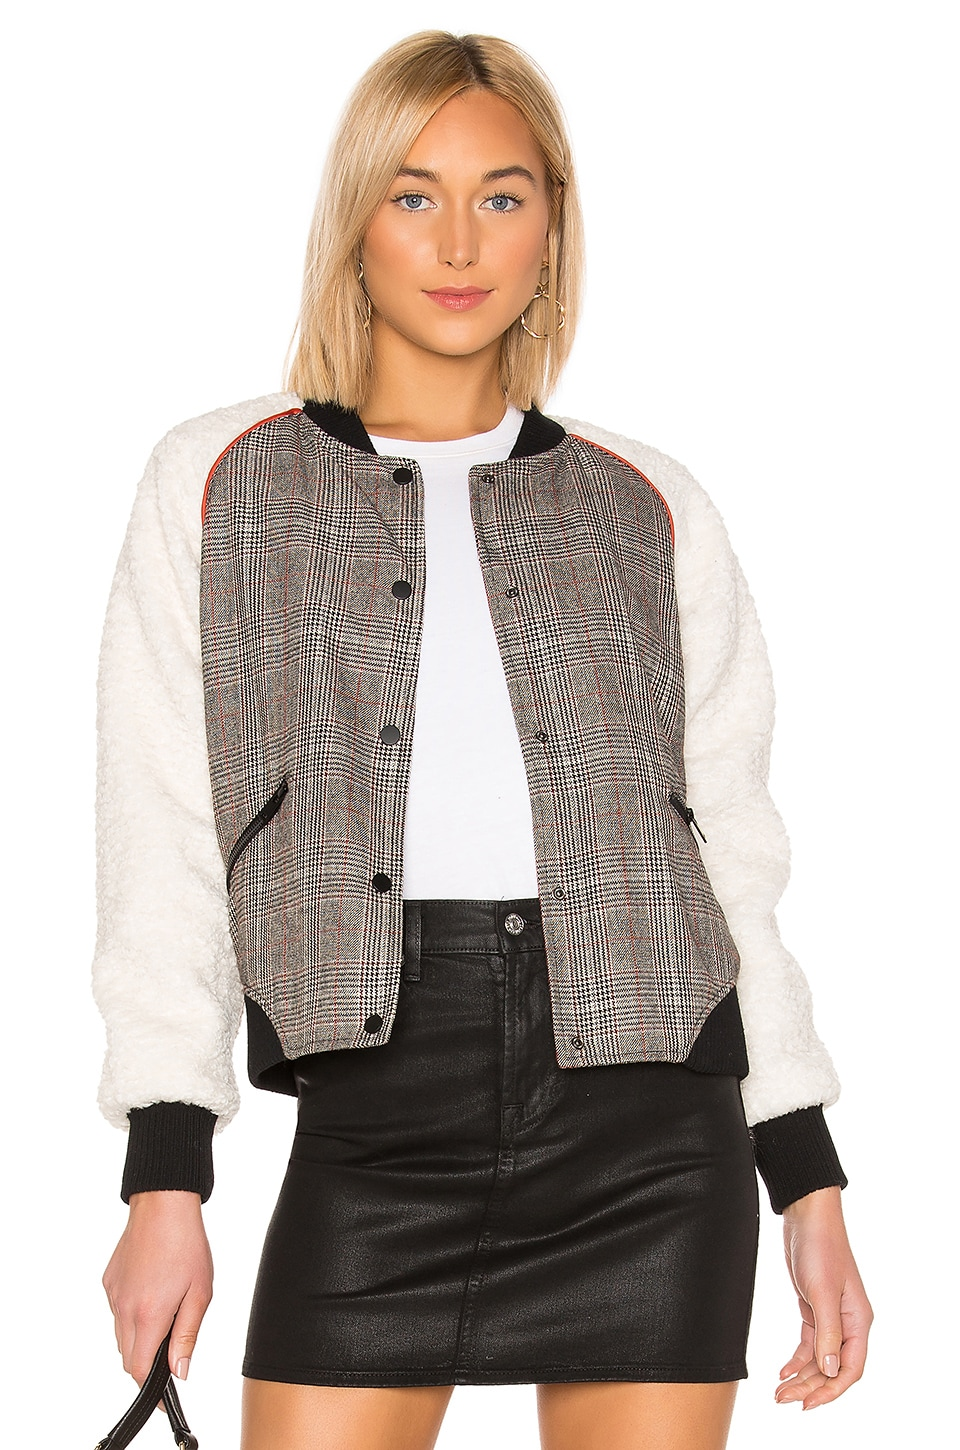 ON PARLE DE VOUS Iris Bomber Jacket in Prince De Galle